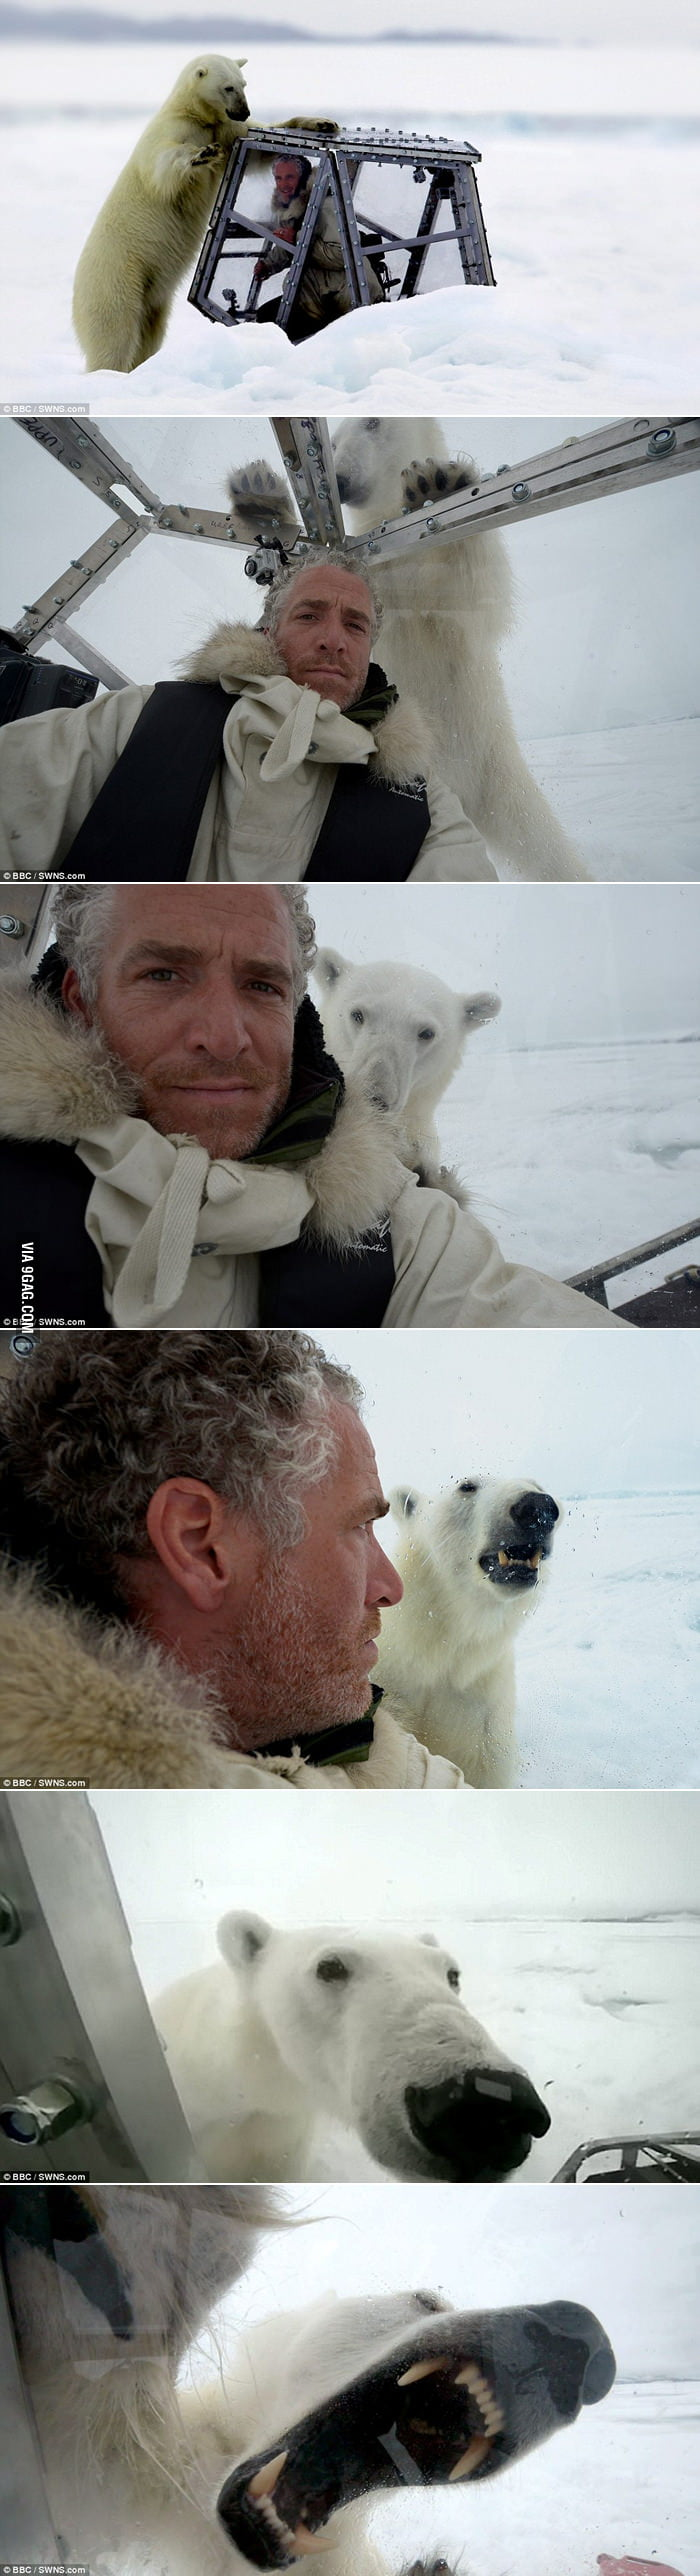 Polar bear is cute, right?